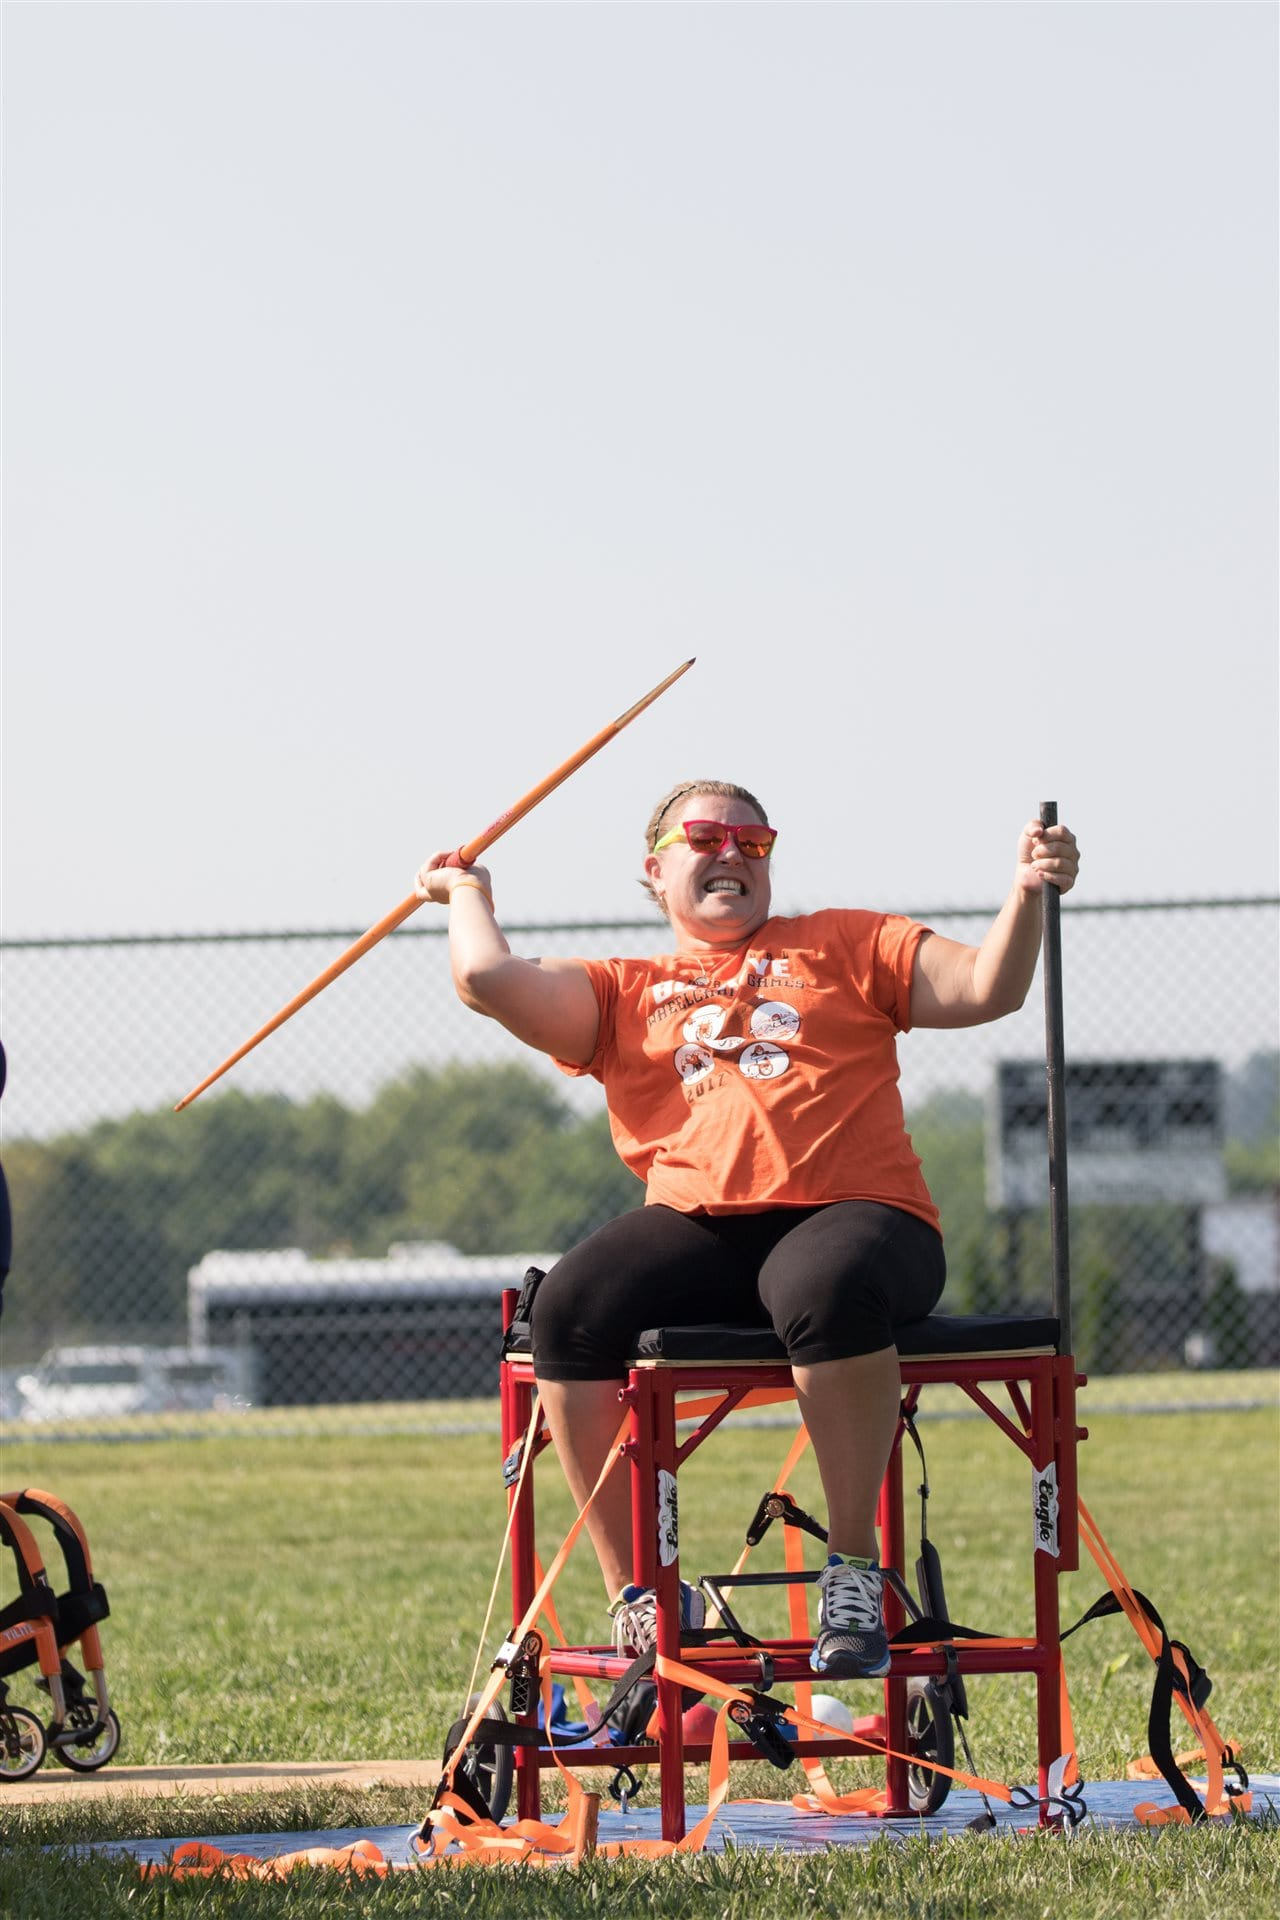 Adaptive sports are beneficial for physical and mental well-being.